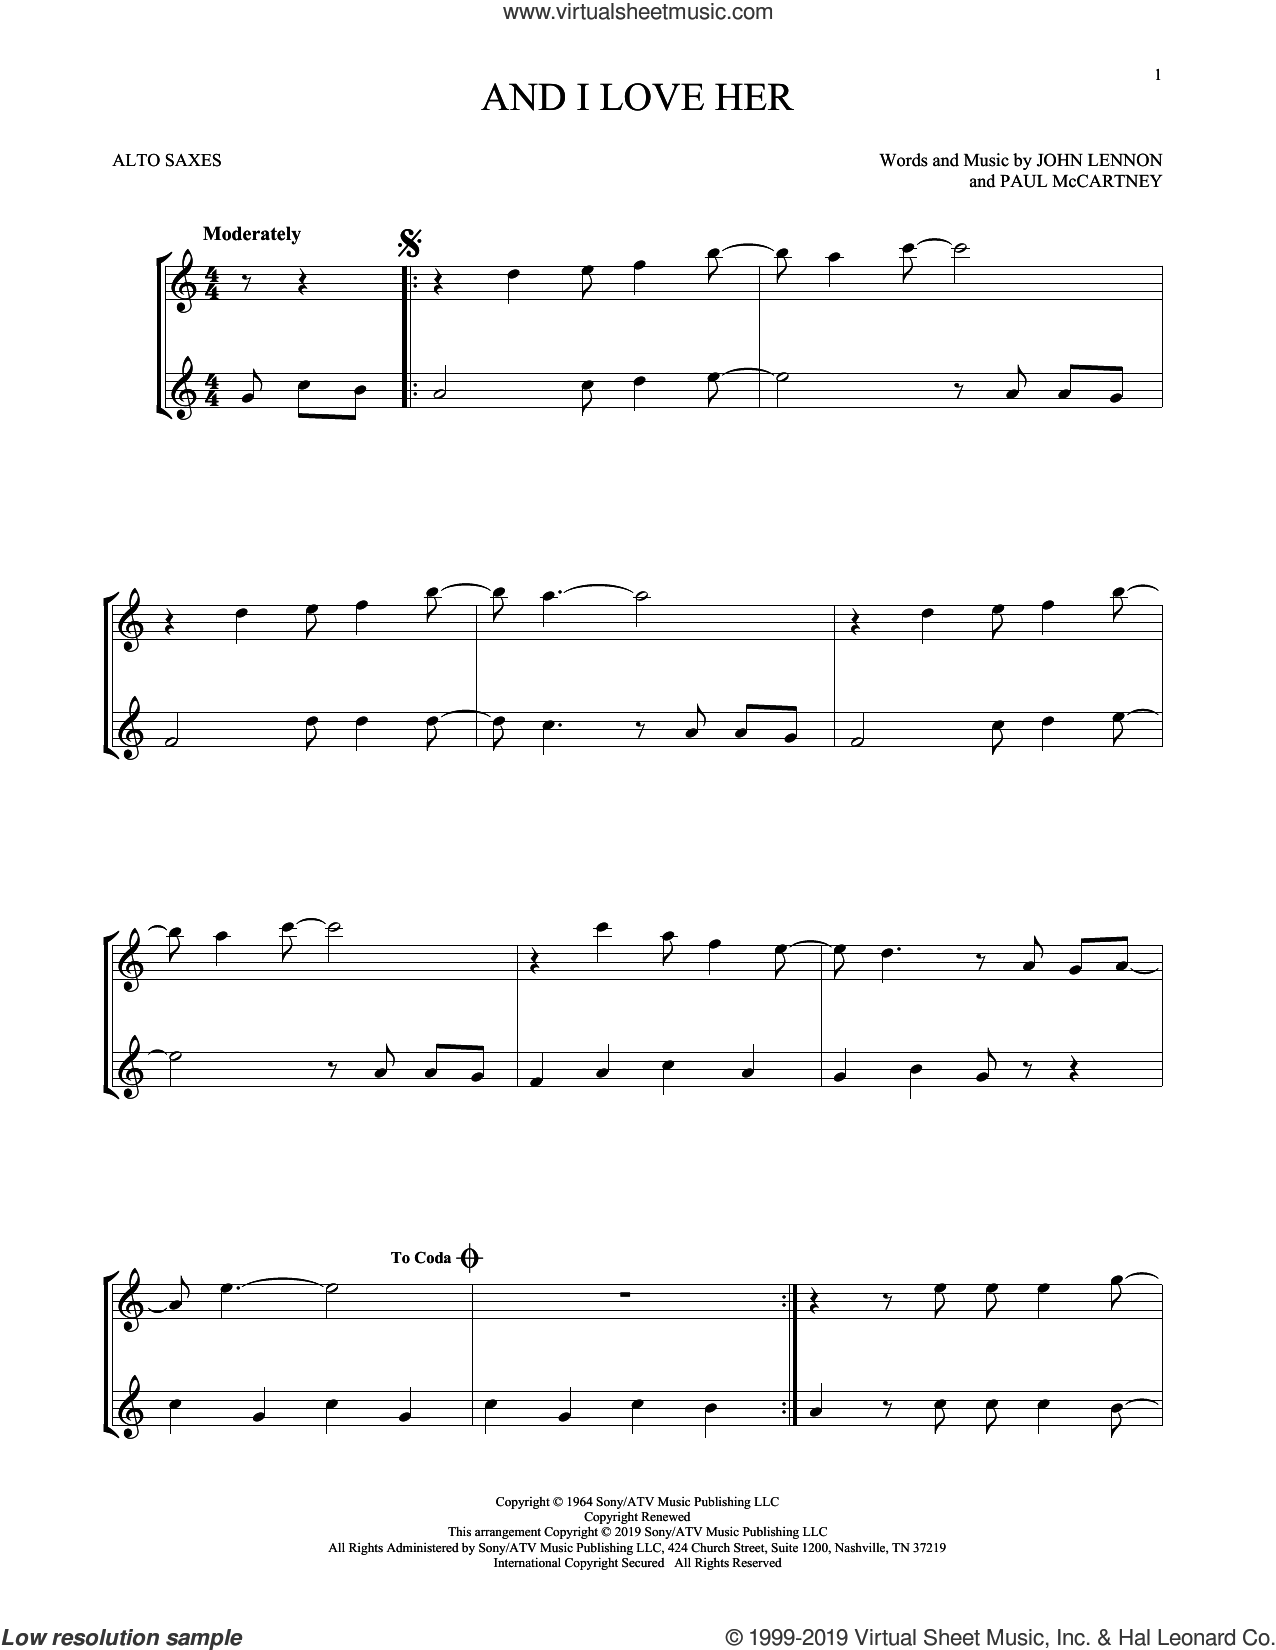 And I Love Her sheet music for two alto saxophones (duets) by The Beatles, John Lennon and Paul McCartney, intermediate skill level